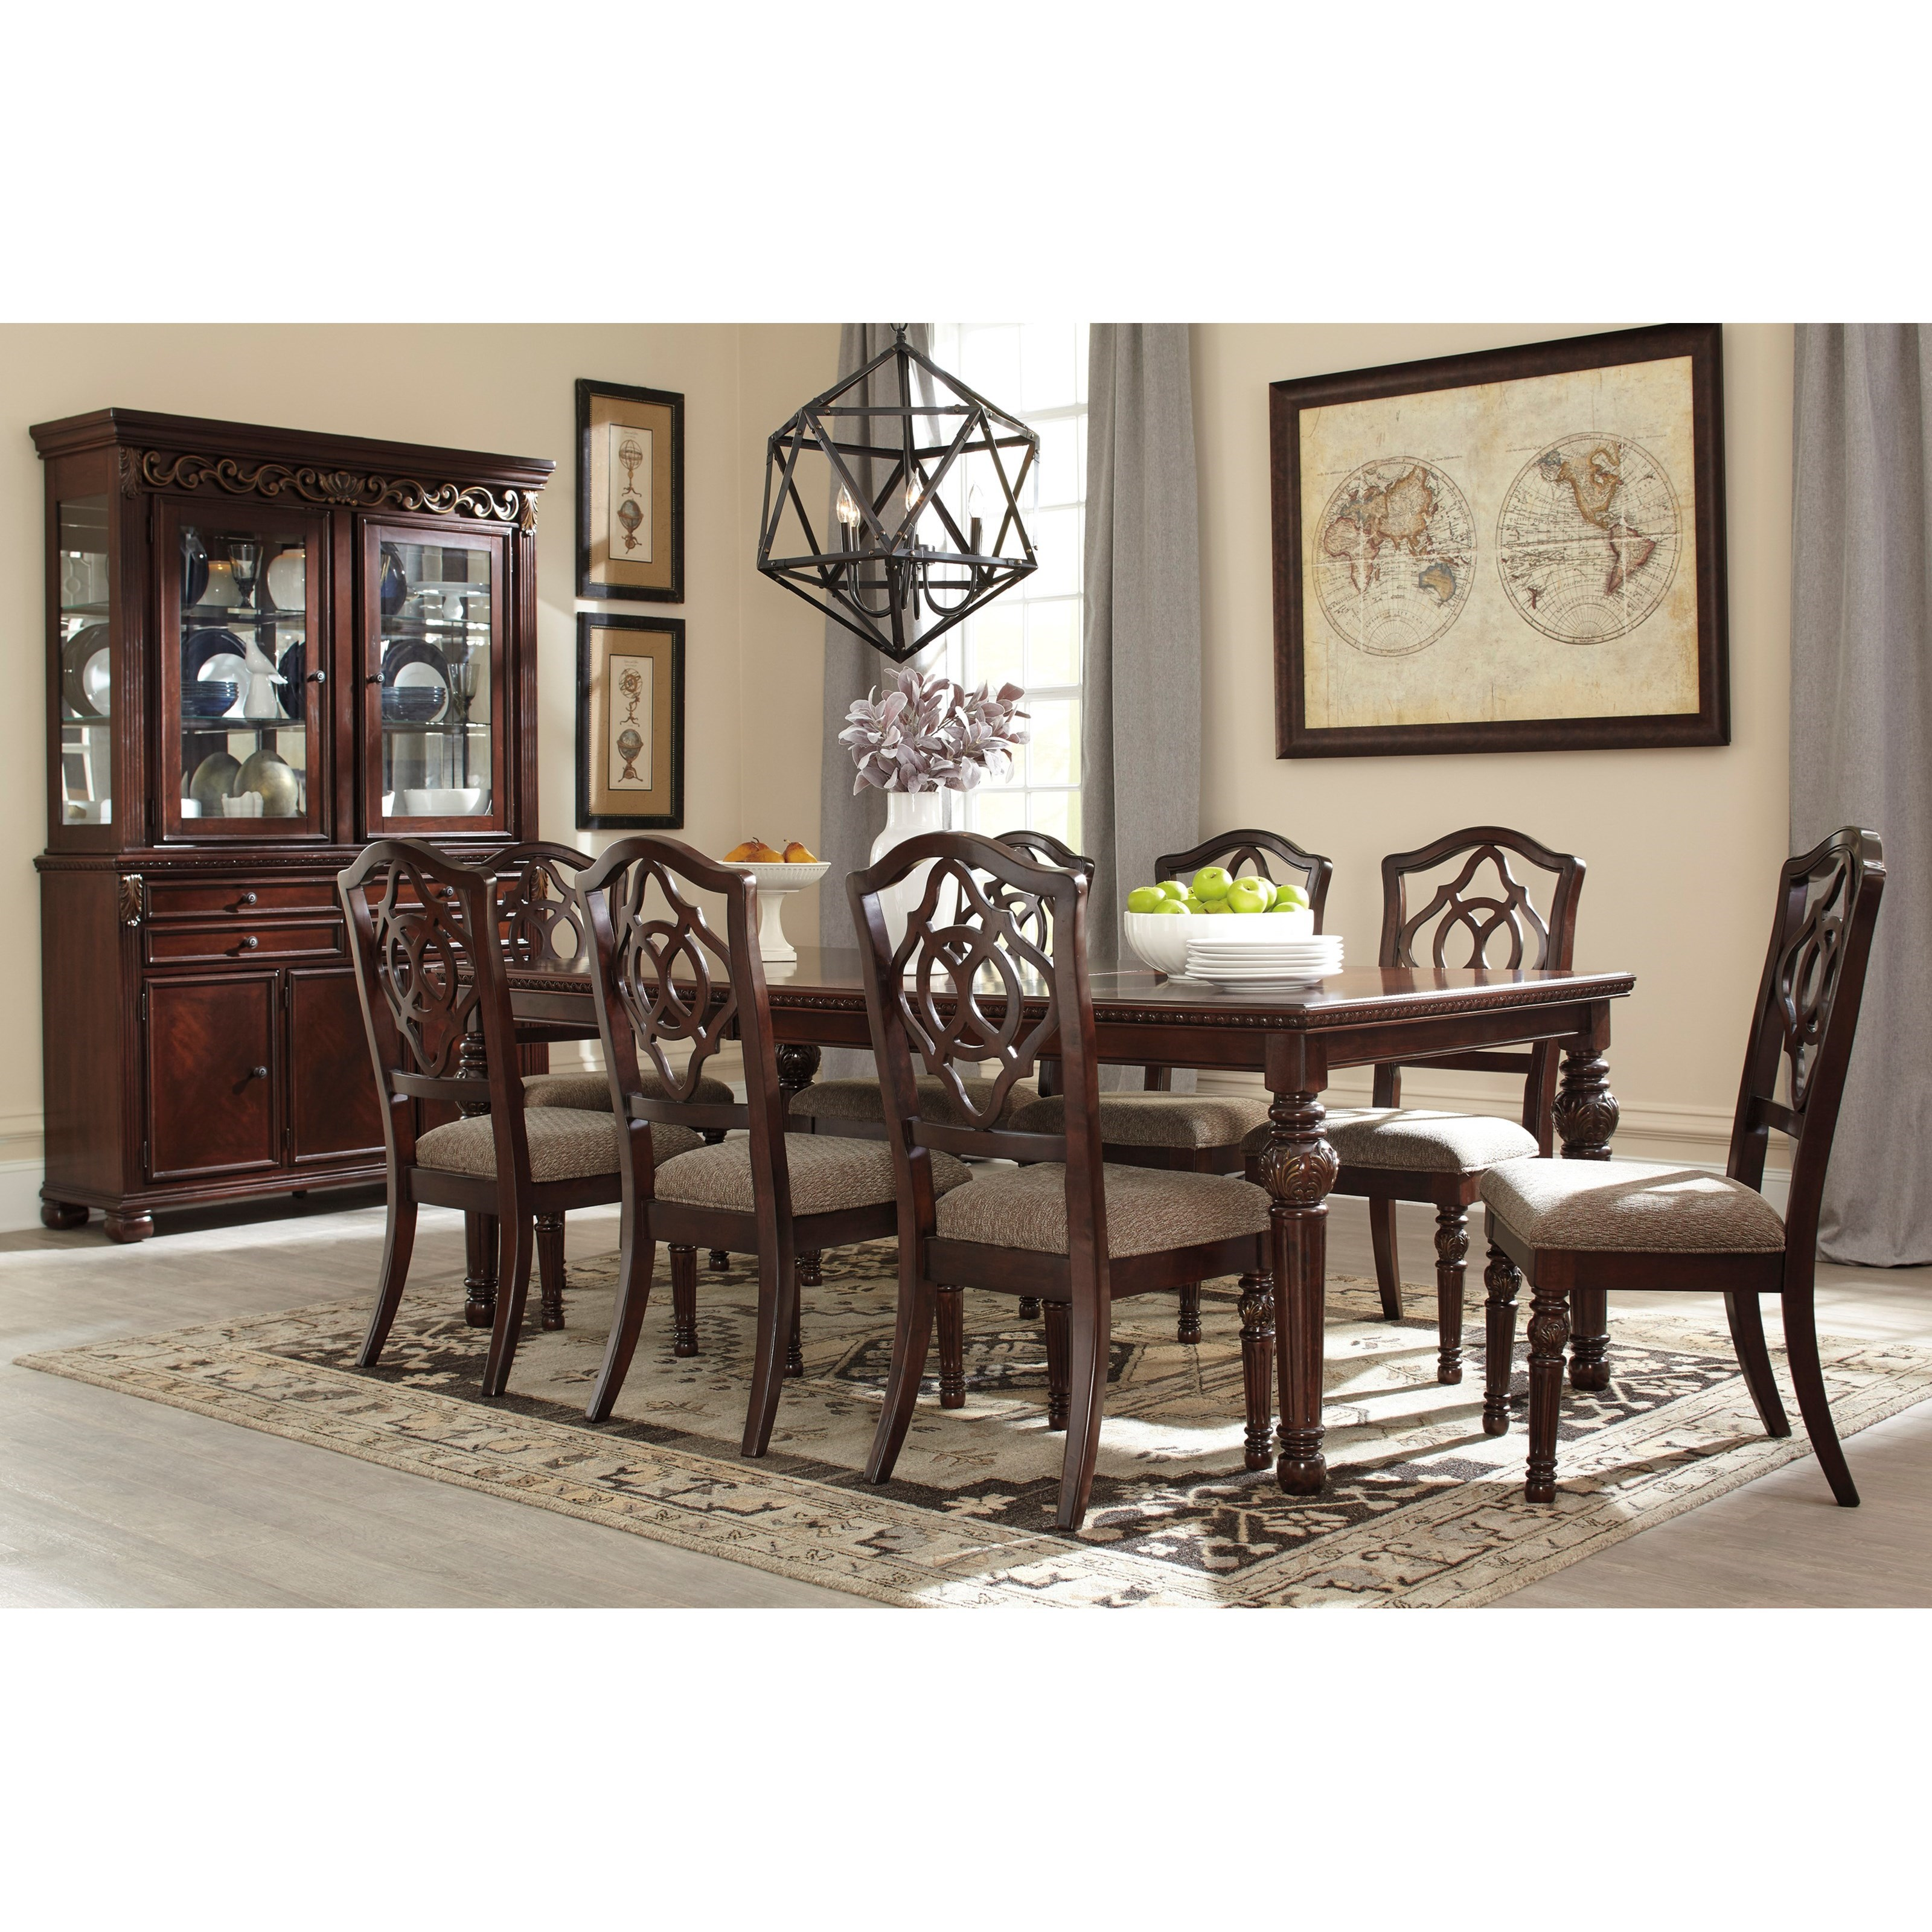 Signature design by ashley leahlyn casual dining room for Casual dining room